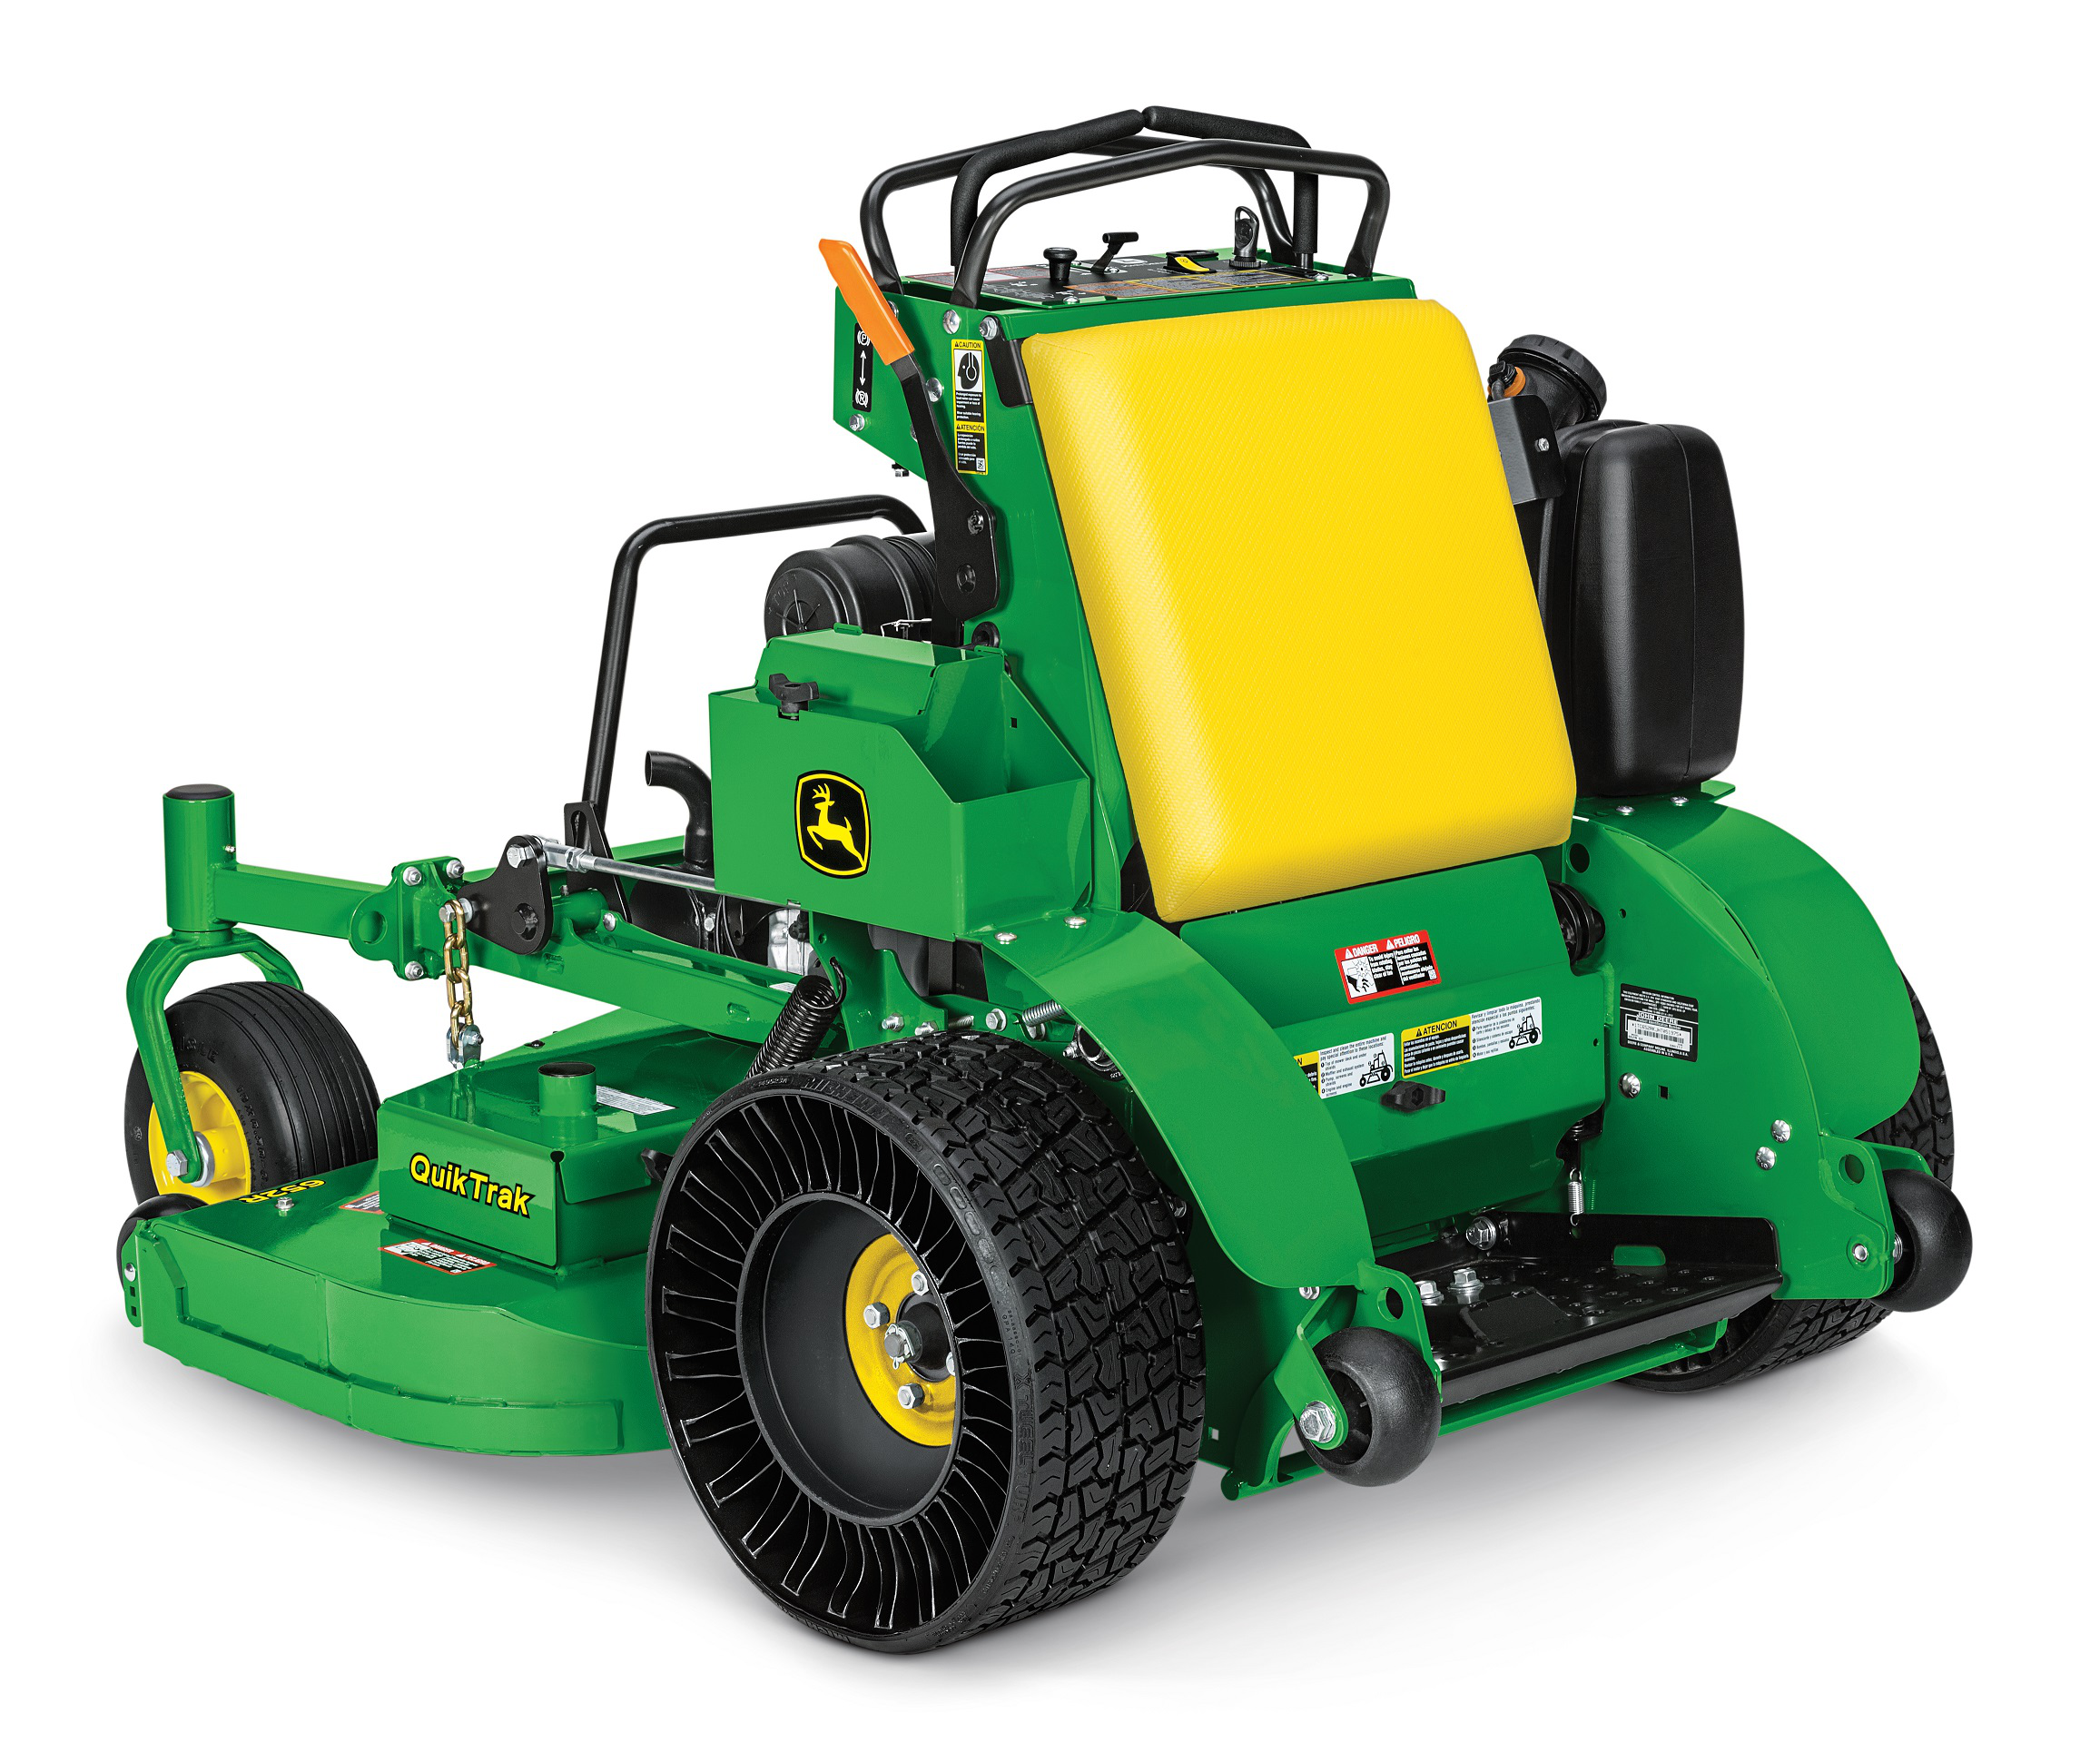 John Deere offers Airless Radial Tire for stand-on mowers